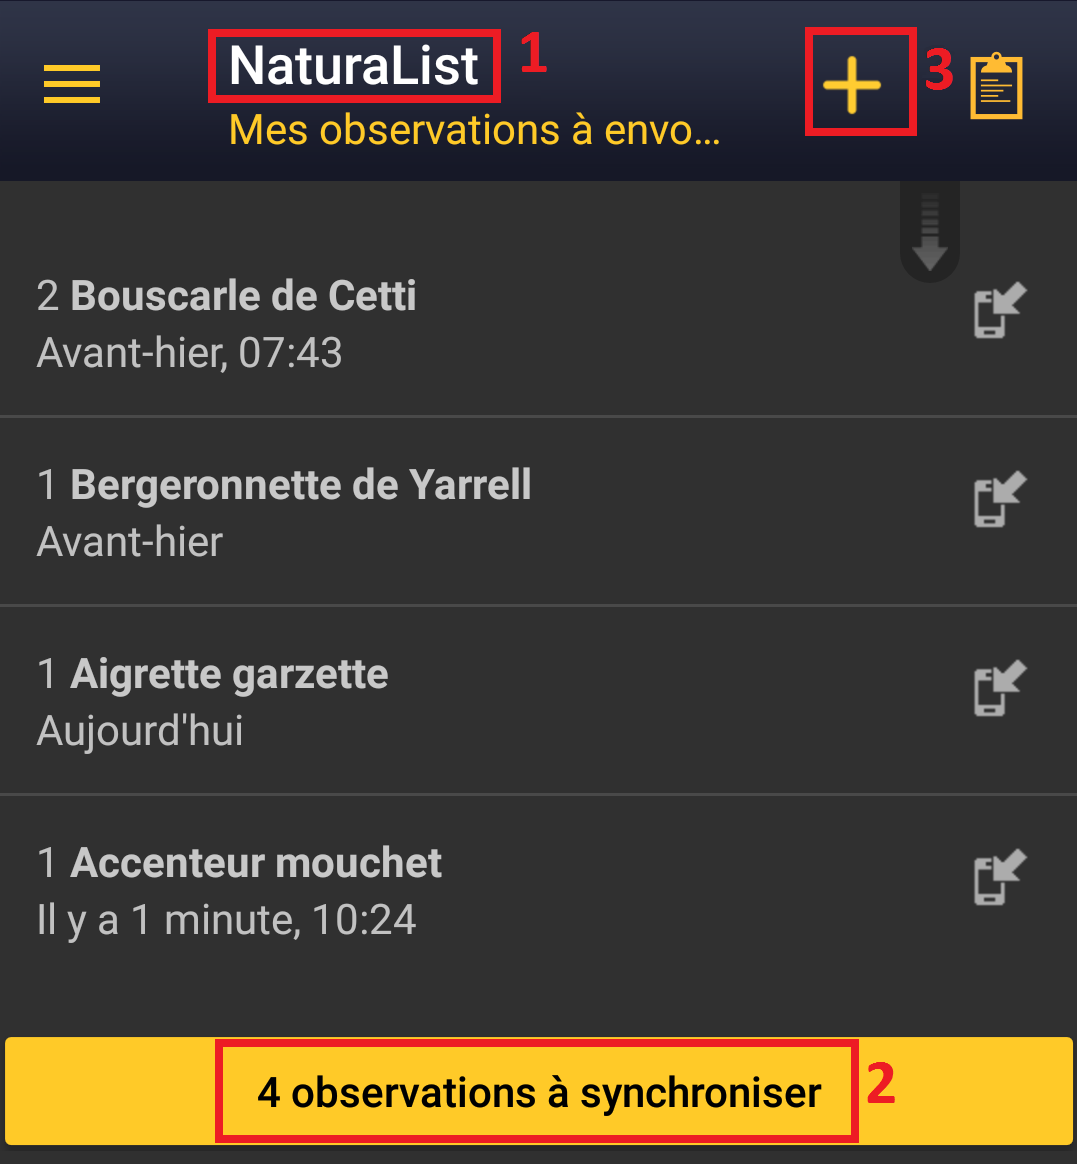 https://cdnfiles1.biolovision.net/www.faune-france.org/userfiles/ListeNaturaList/10-synchroniser-obs.png